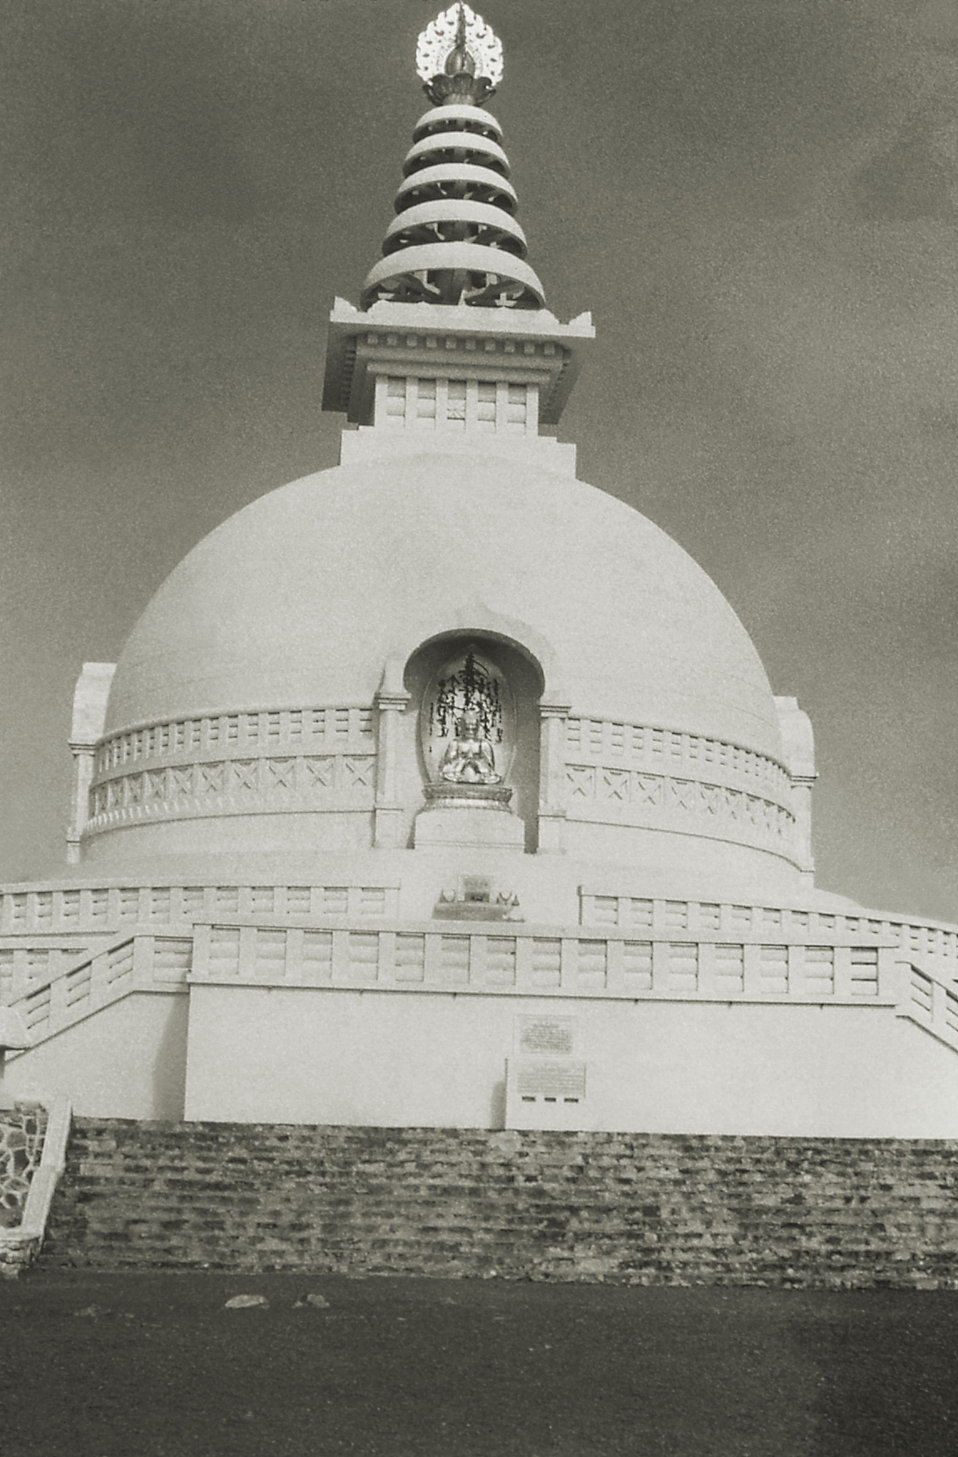 This 1975 image depicts the fa�e of the Vishwa Shanti Stupa at Rajgir, which is one of the 80 Peace Pagodas found around the world, helpin